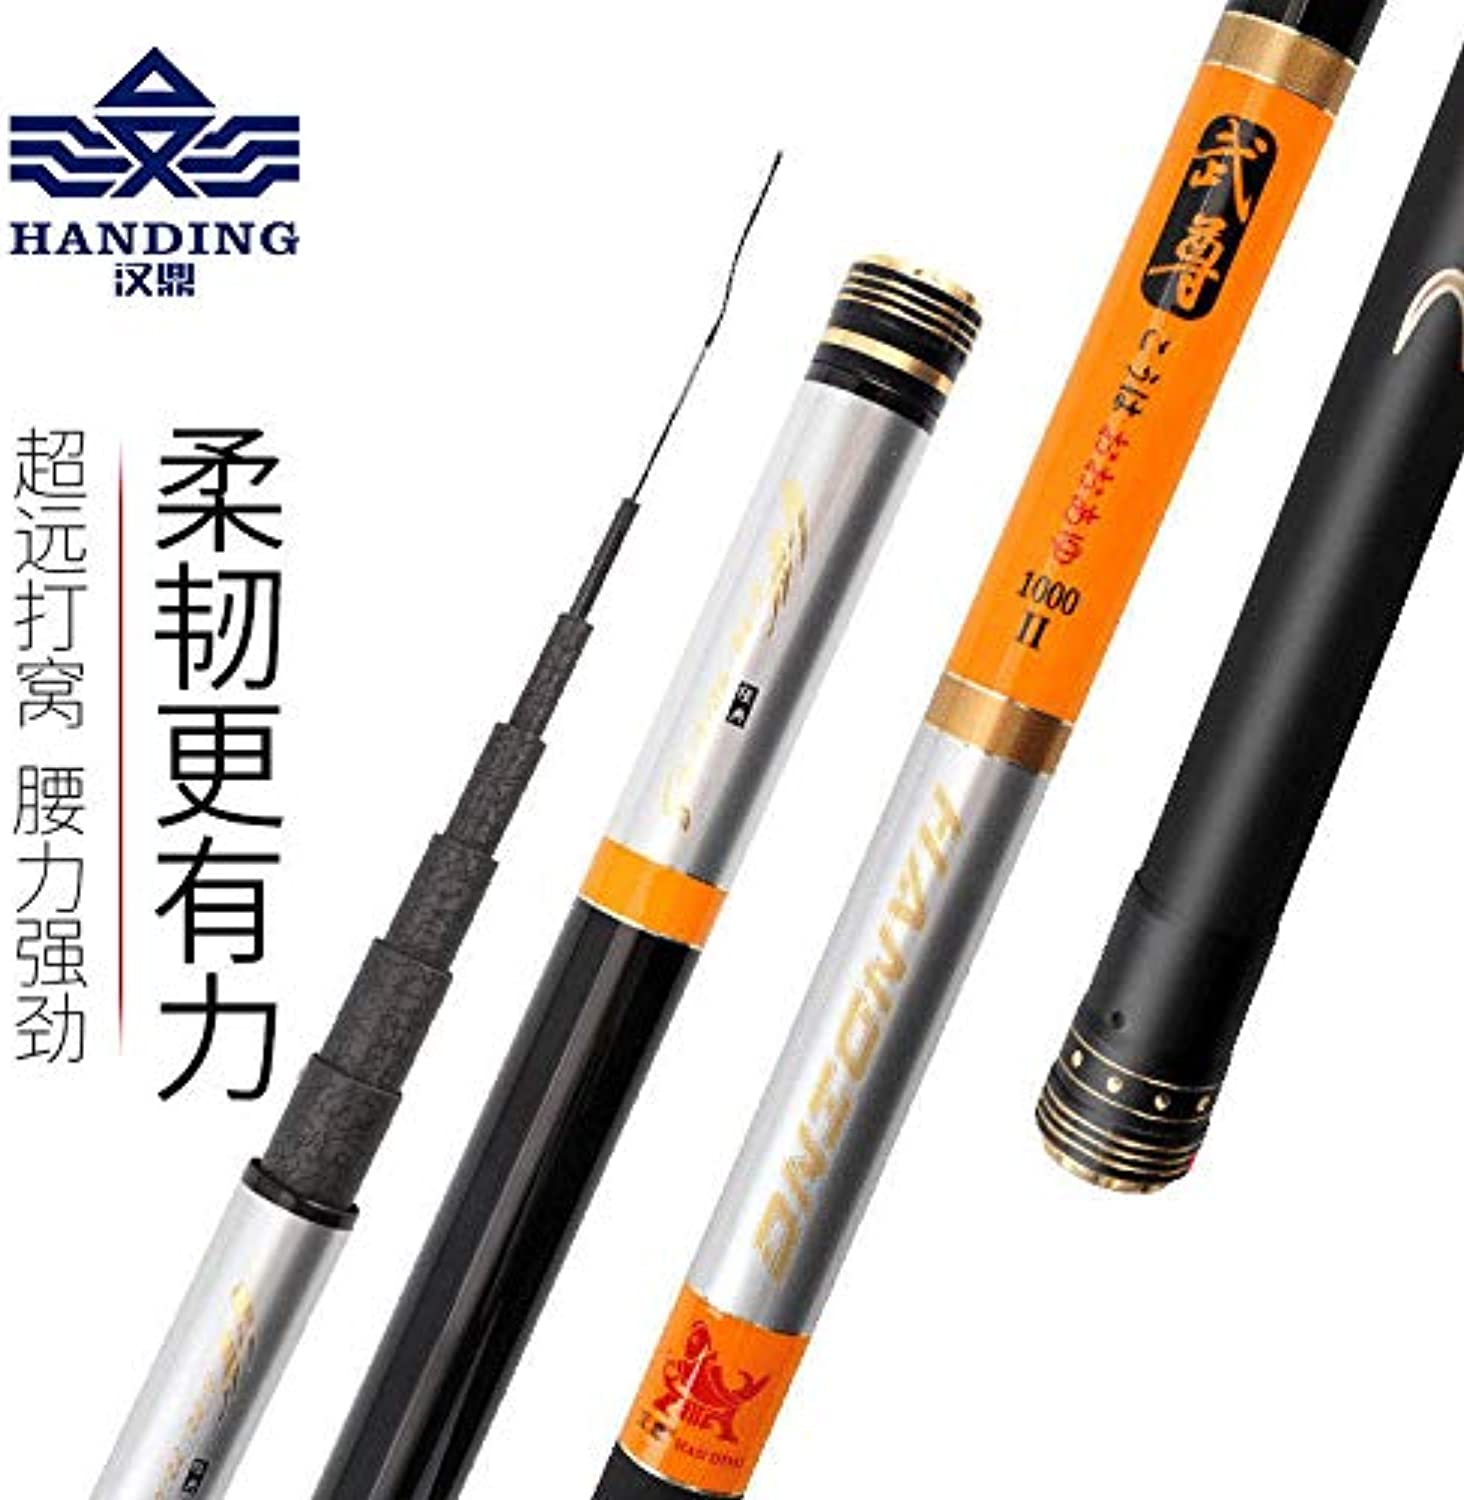 H & Q Takeru Long Play nest Pole Streams Pole Pole Pole in Hand Guns 9 10 11 12 13 14 Meters superhard Fishing rods